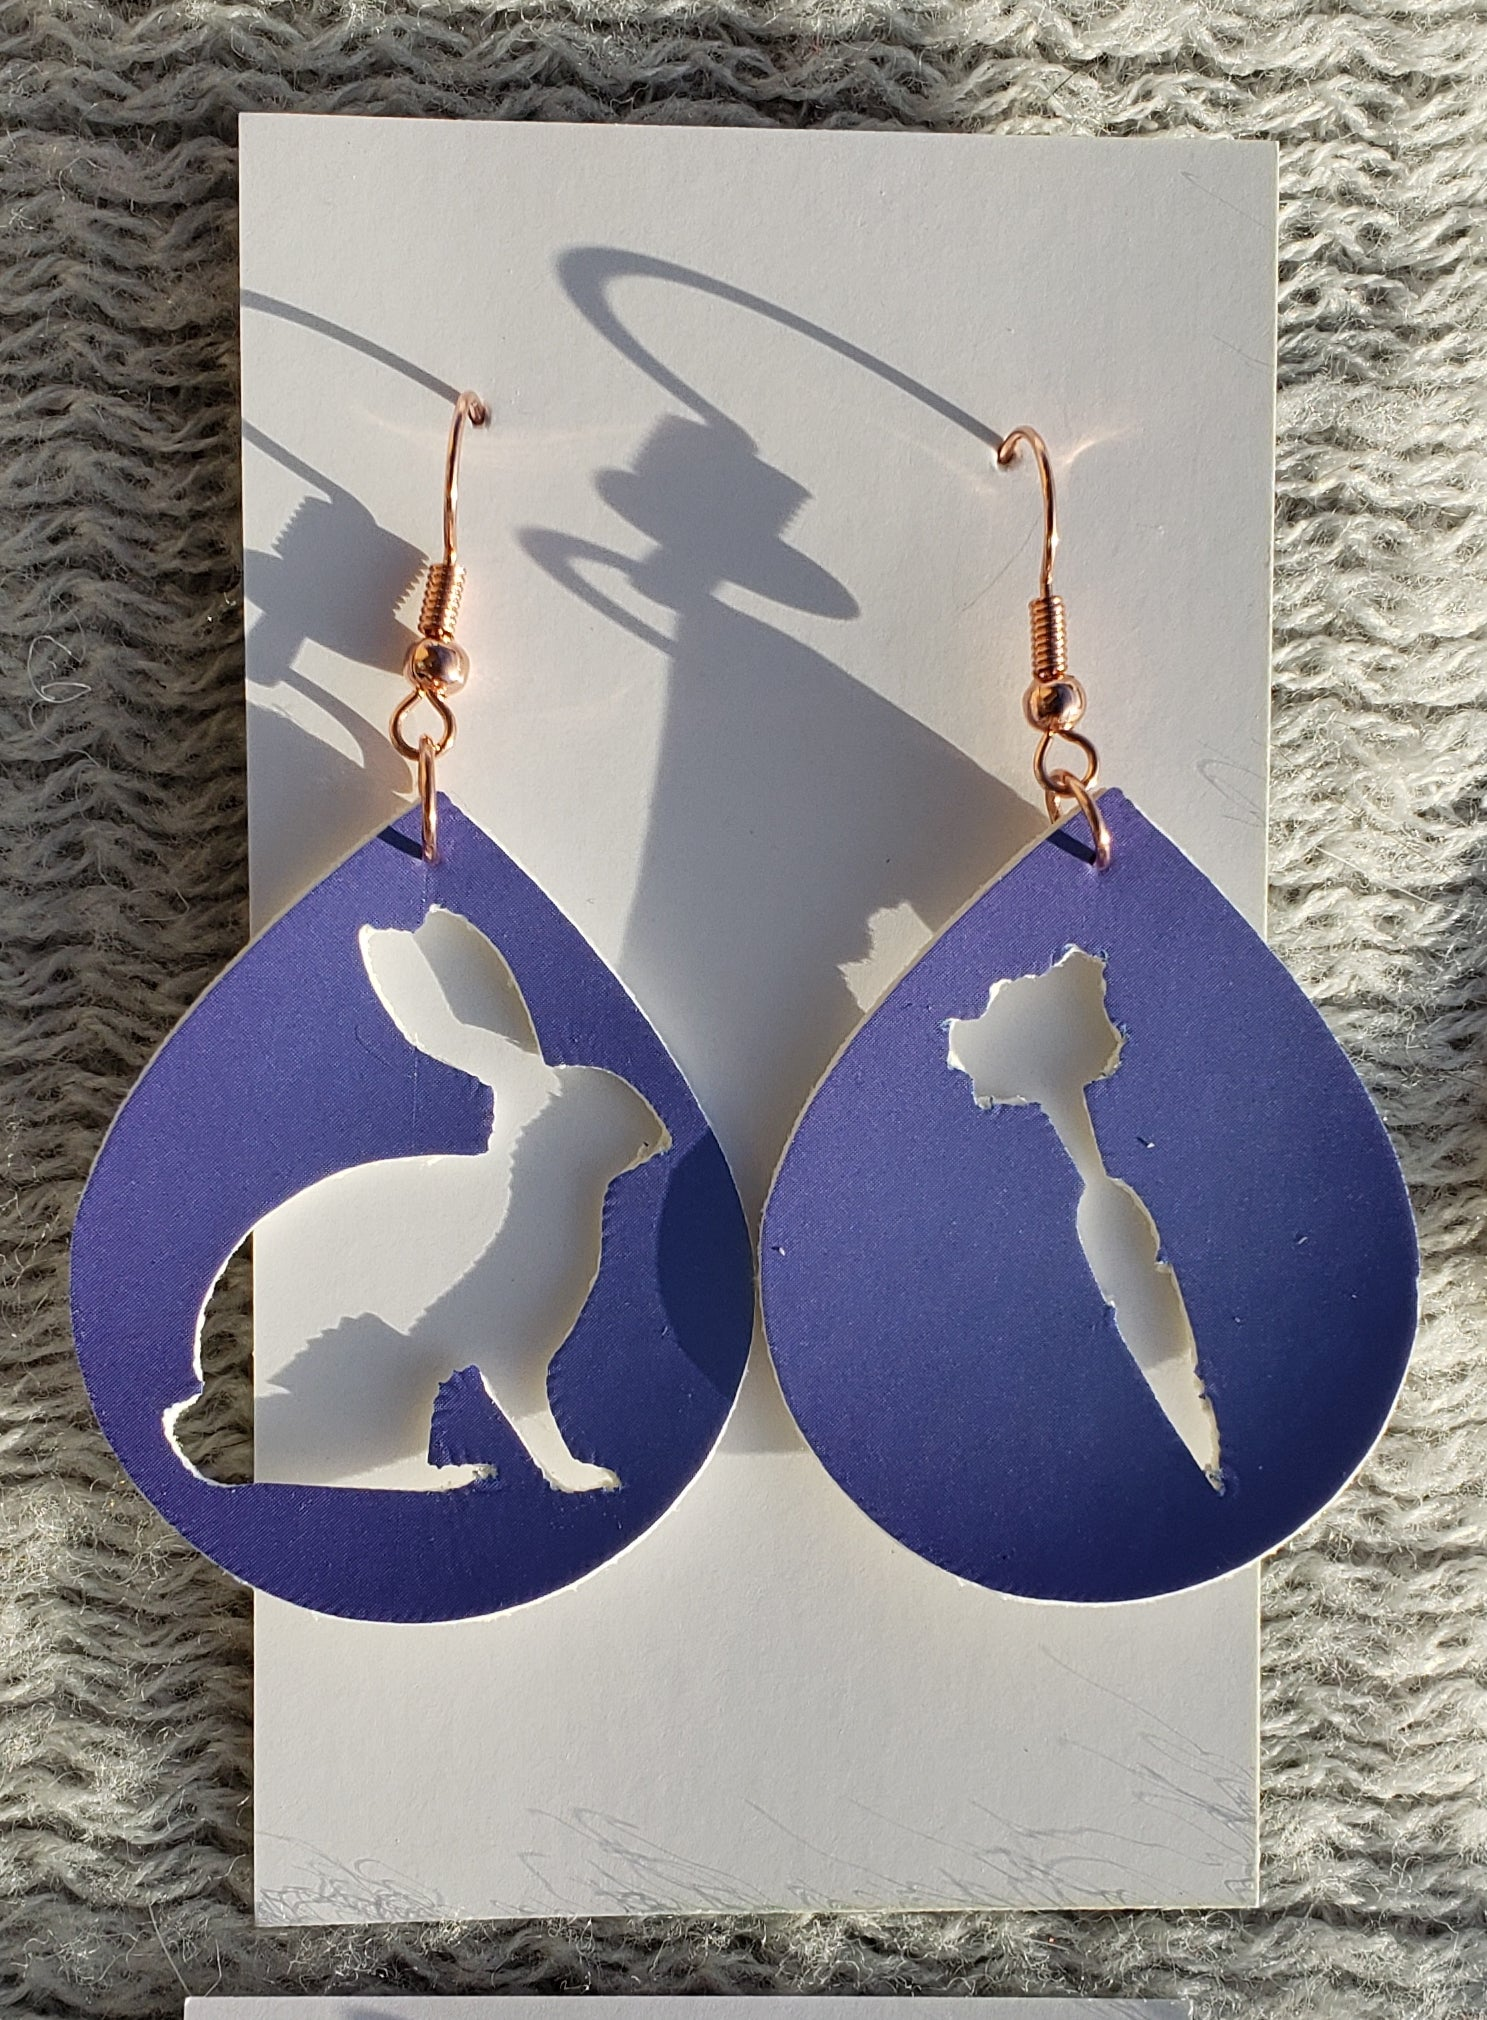 Little bunny earrings